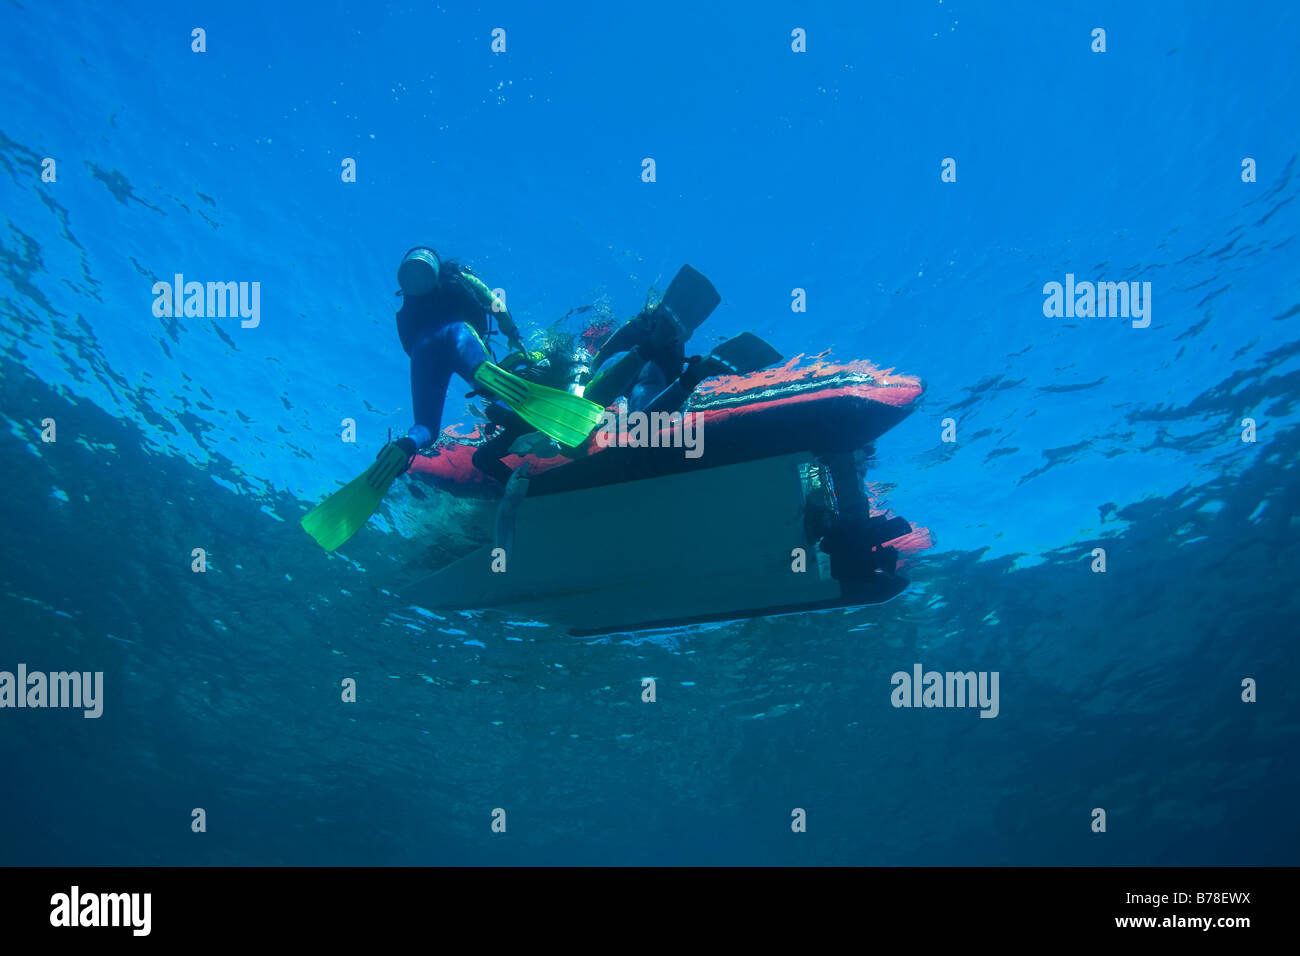 Divers ardously clamber on to the boat after diving, Indonesia, South Asia - Stock Image